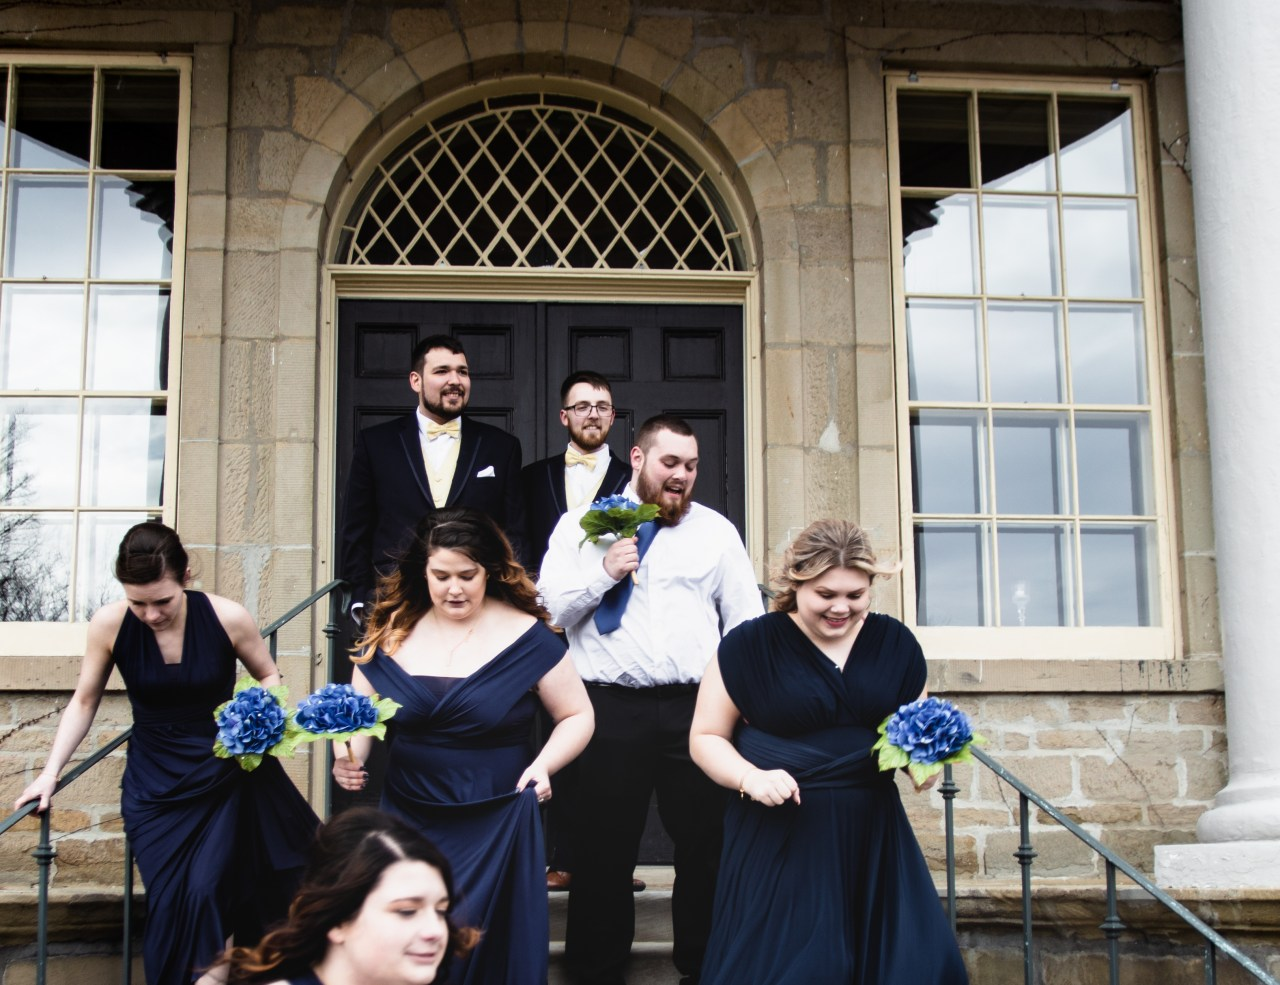 Wedding Photographer, Fredericton, New Brunswick, Halifax, Nova Scotia, Canada, Rates, Contact, Professional, Booking, Travel, Wedding Party, Love is Love